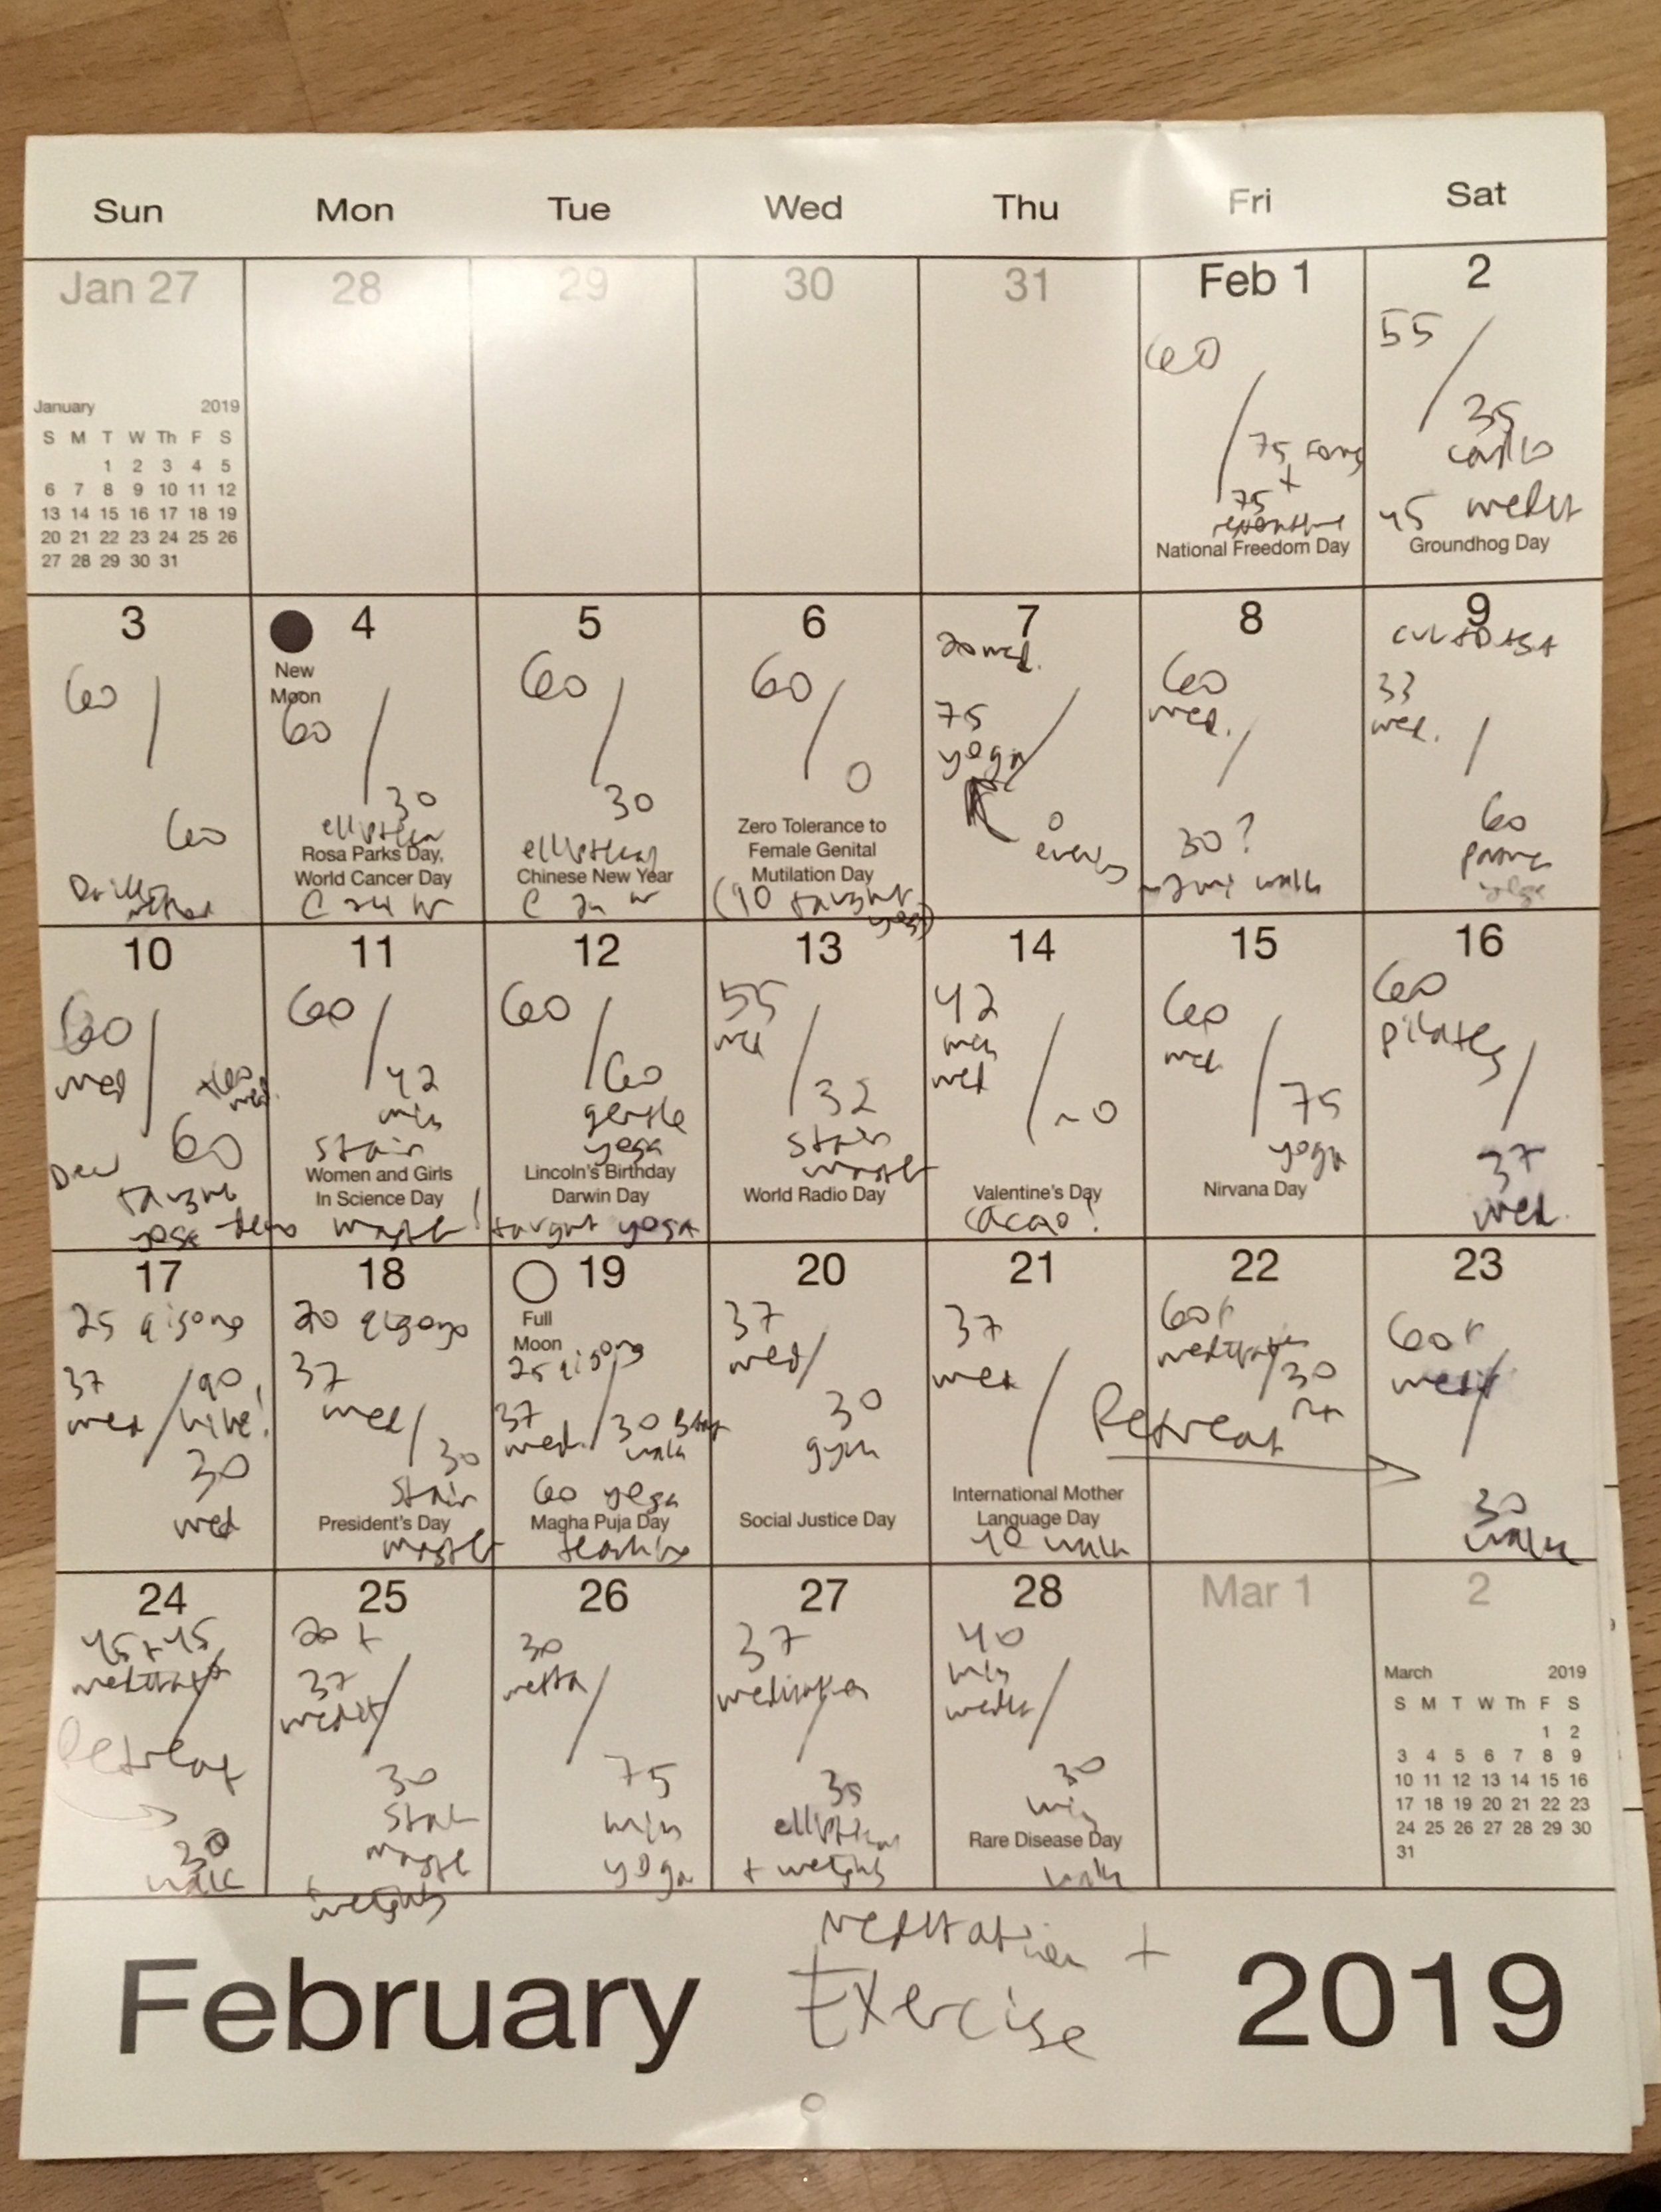 Minutes per Day - My exercise log for February